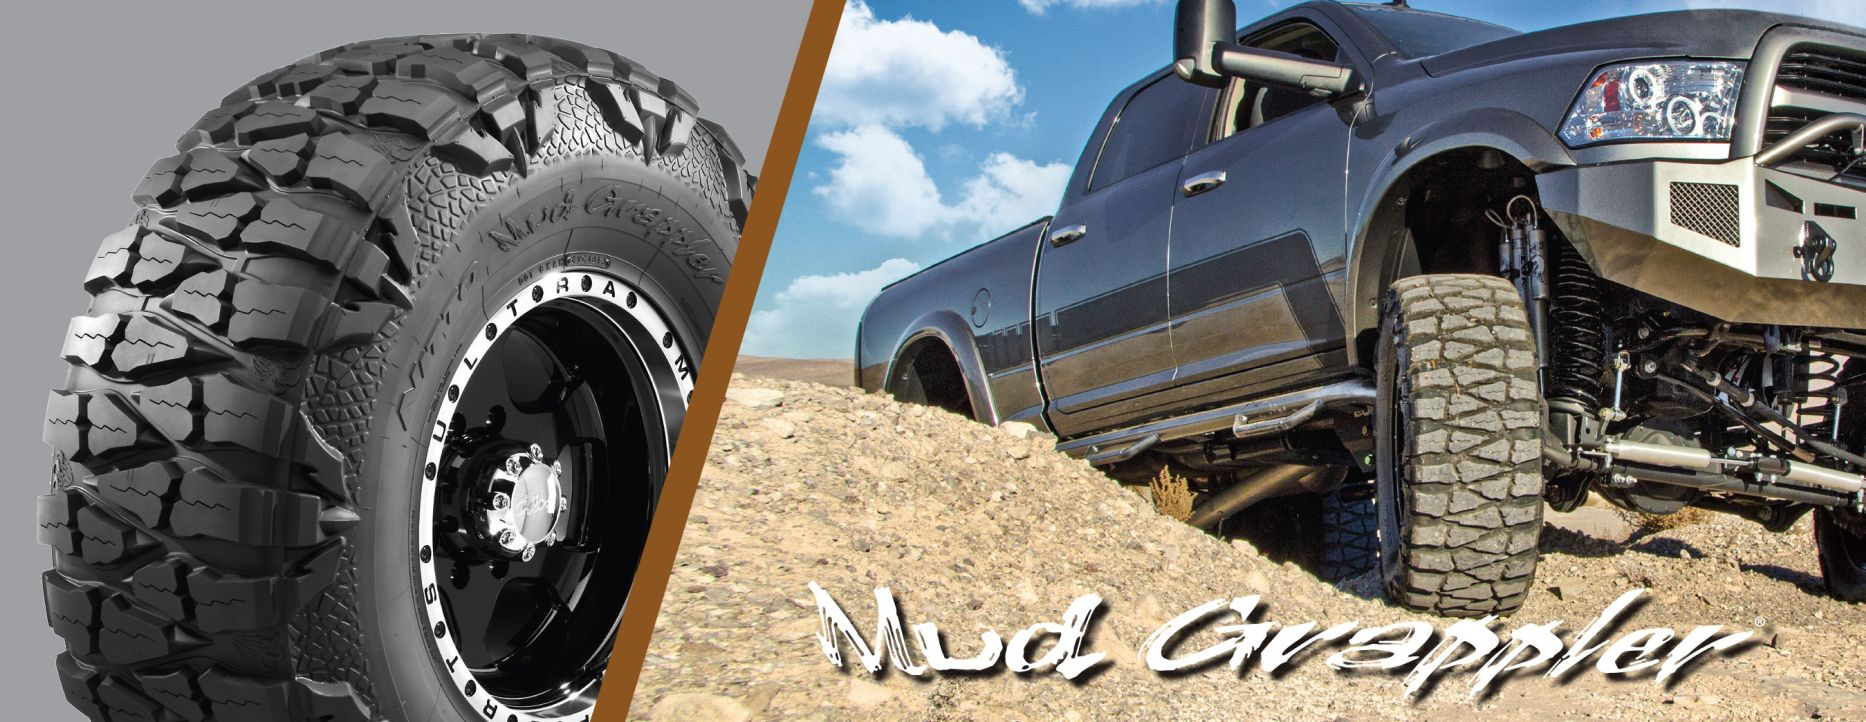 Best Diesel Truck 2016 >> Grappler Buyer's Guide: How to Pick the Best Tire for Your ...